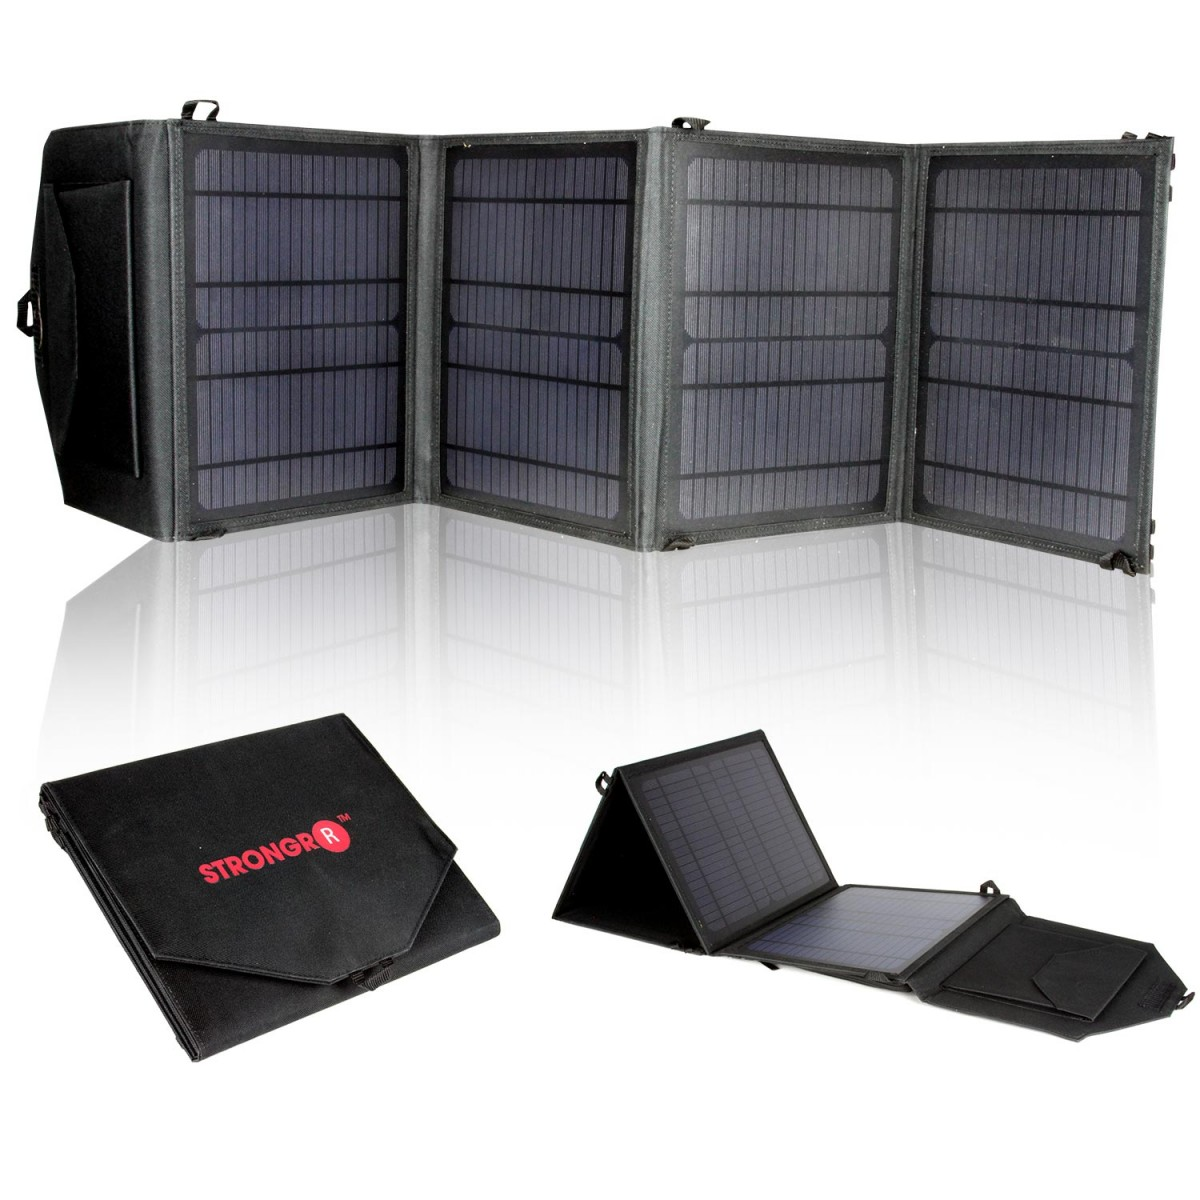 Strongrr 28W Solar Charger w/ Foldable High Efficient Monocrystalline Panels